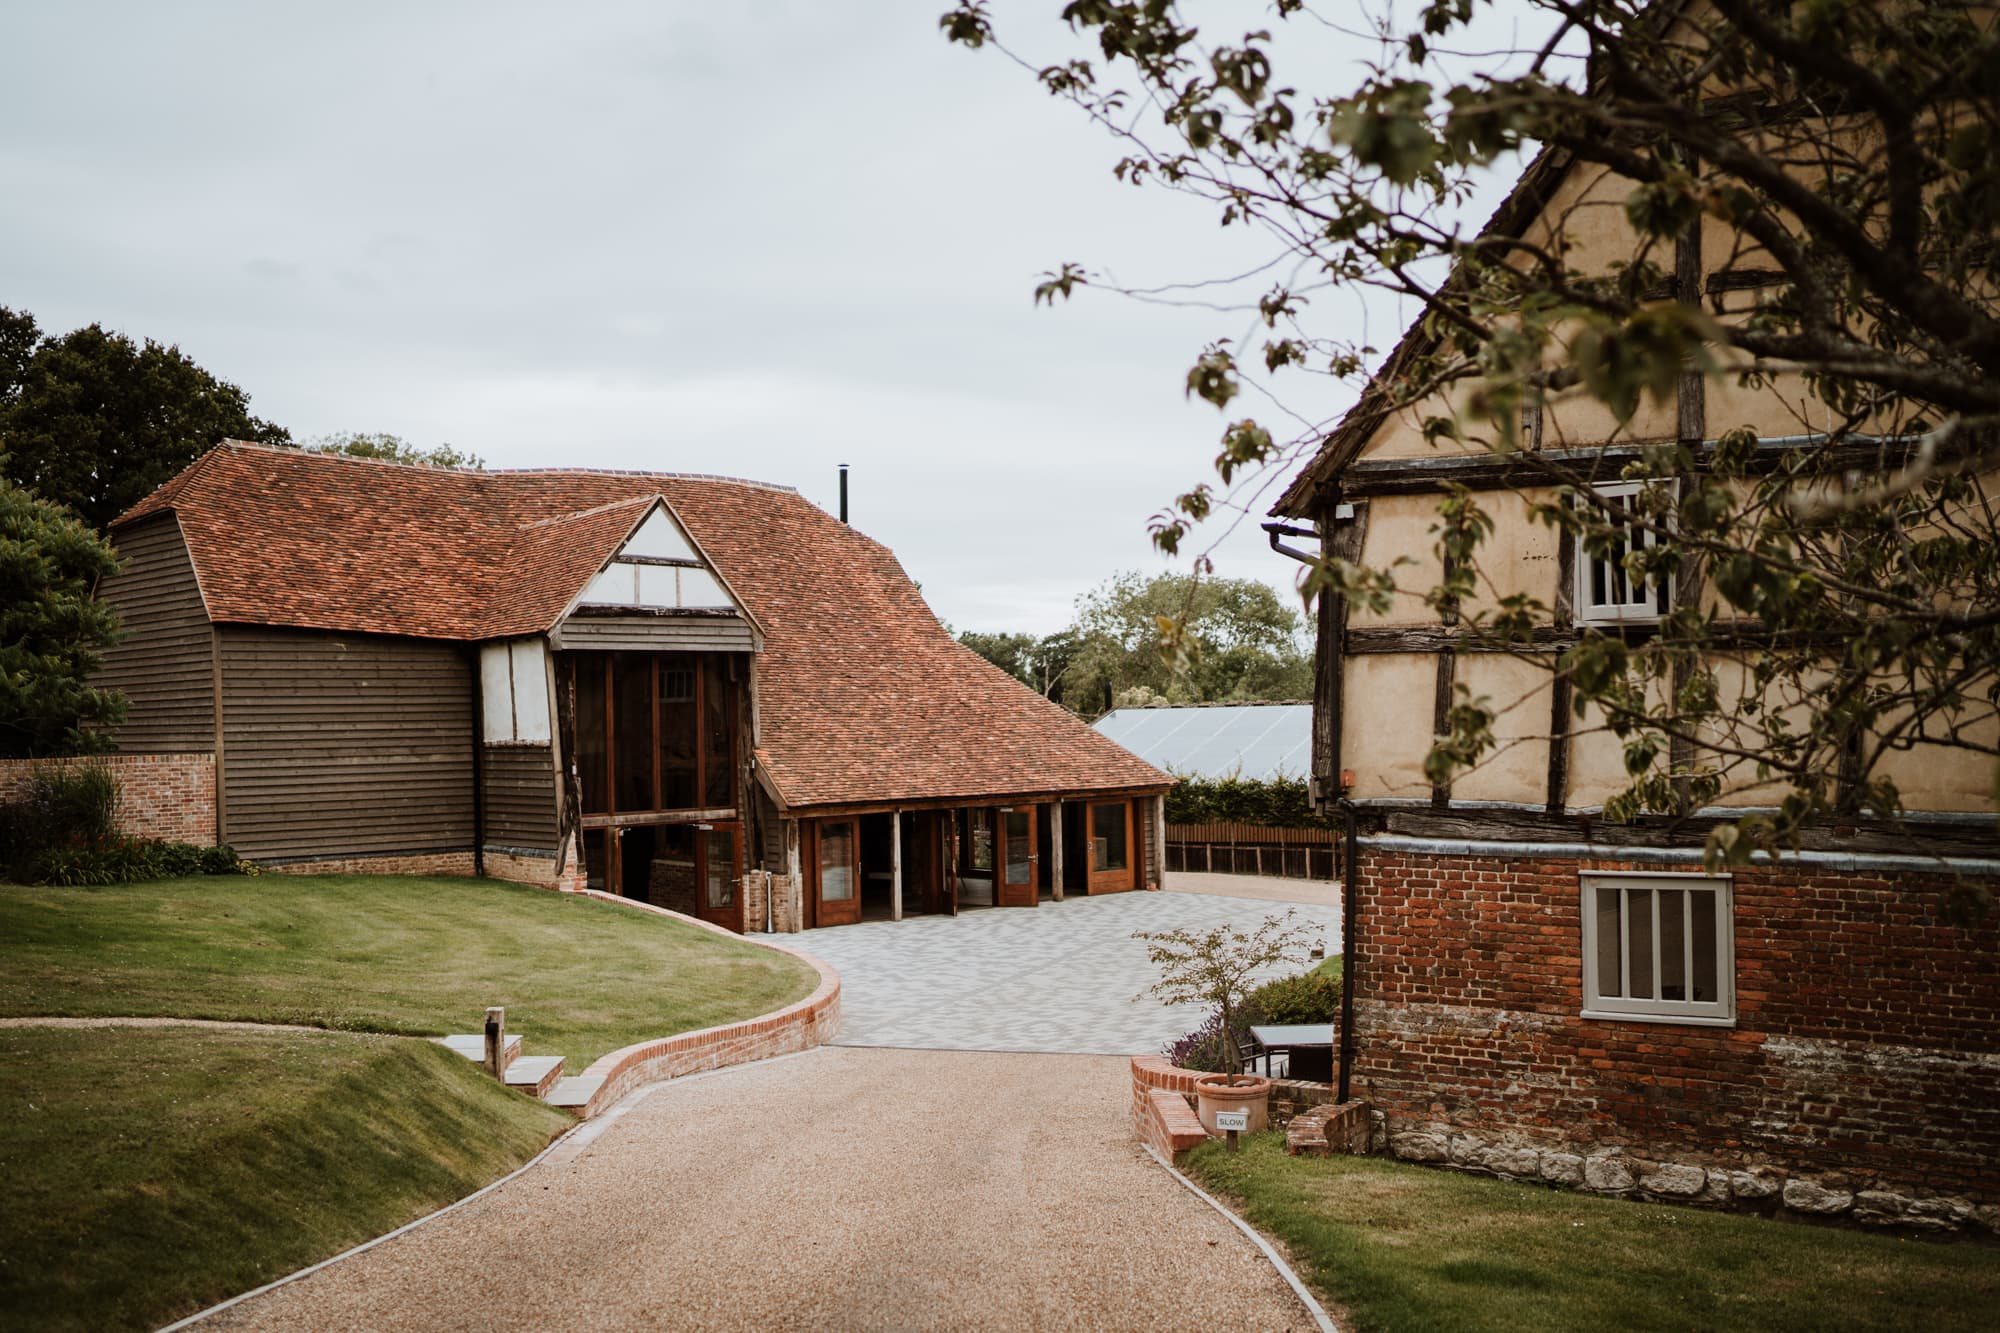 View of The Oak Barn and Weavers Cottages from the driveway